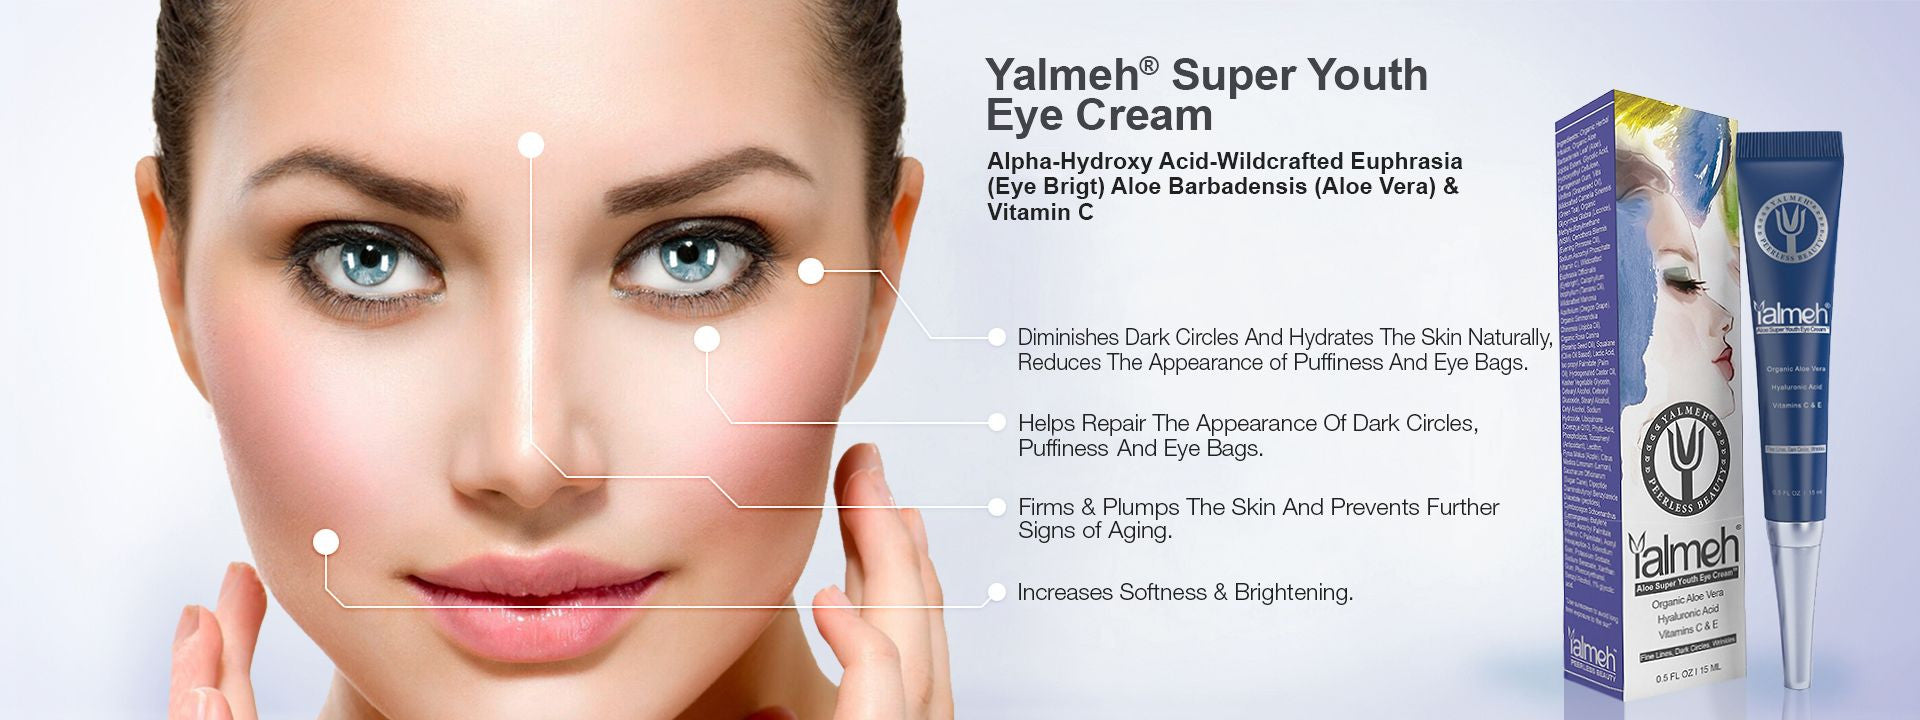 Super Youth Eye Cream By Yalmeh Naturals